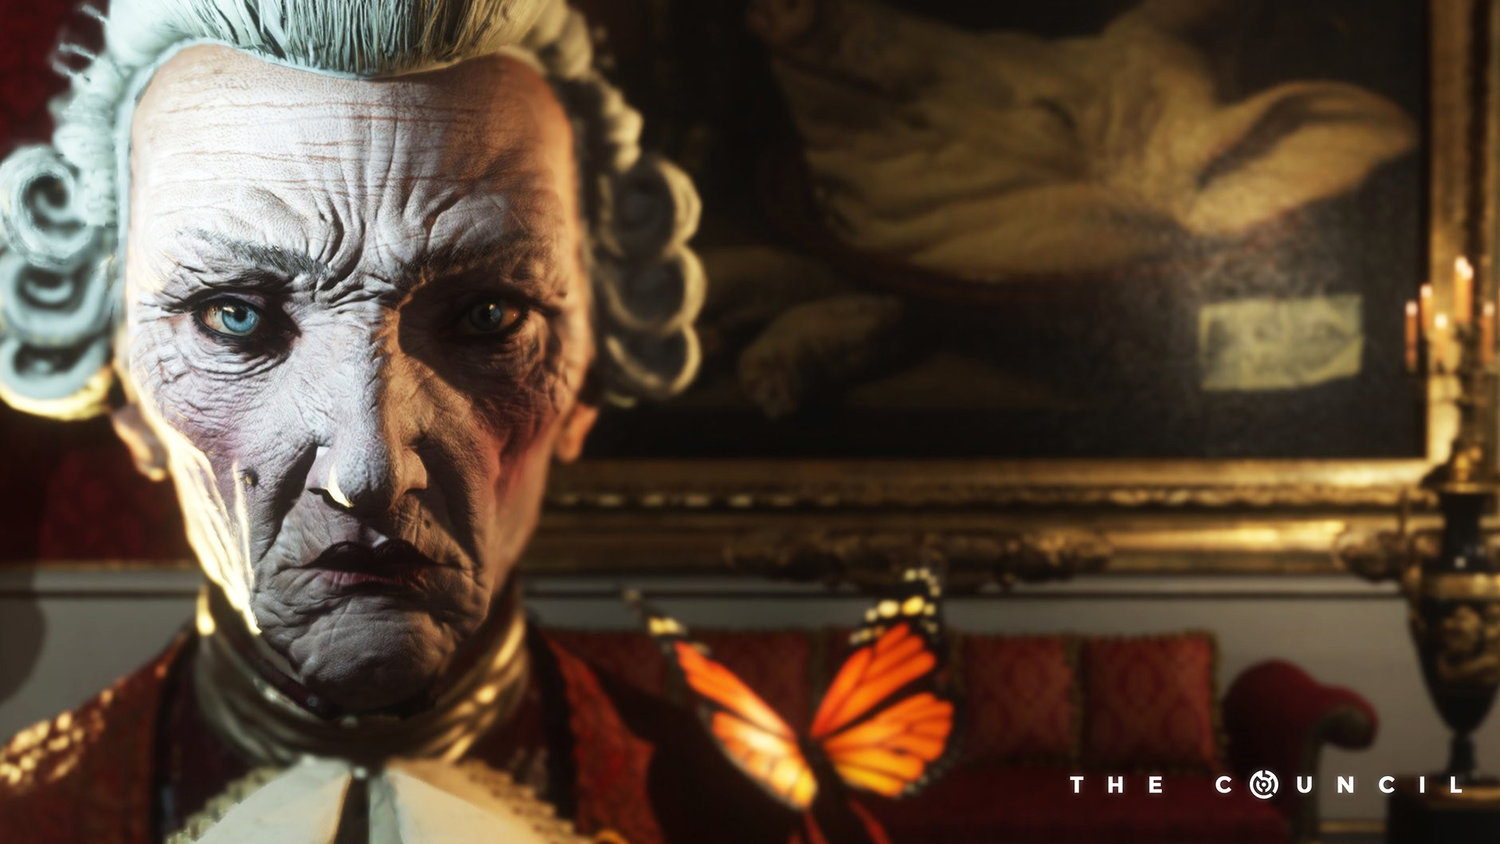 The Council launches episode 1 on PC and consoles